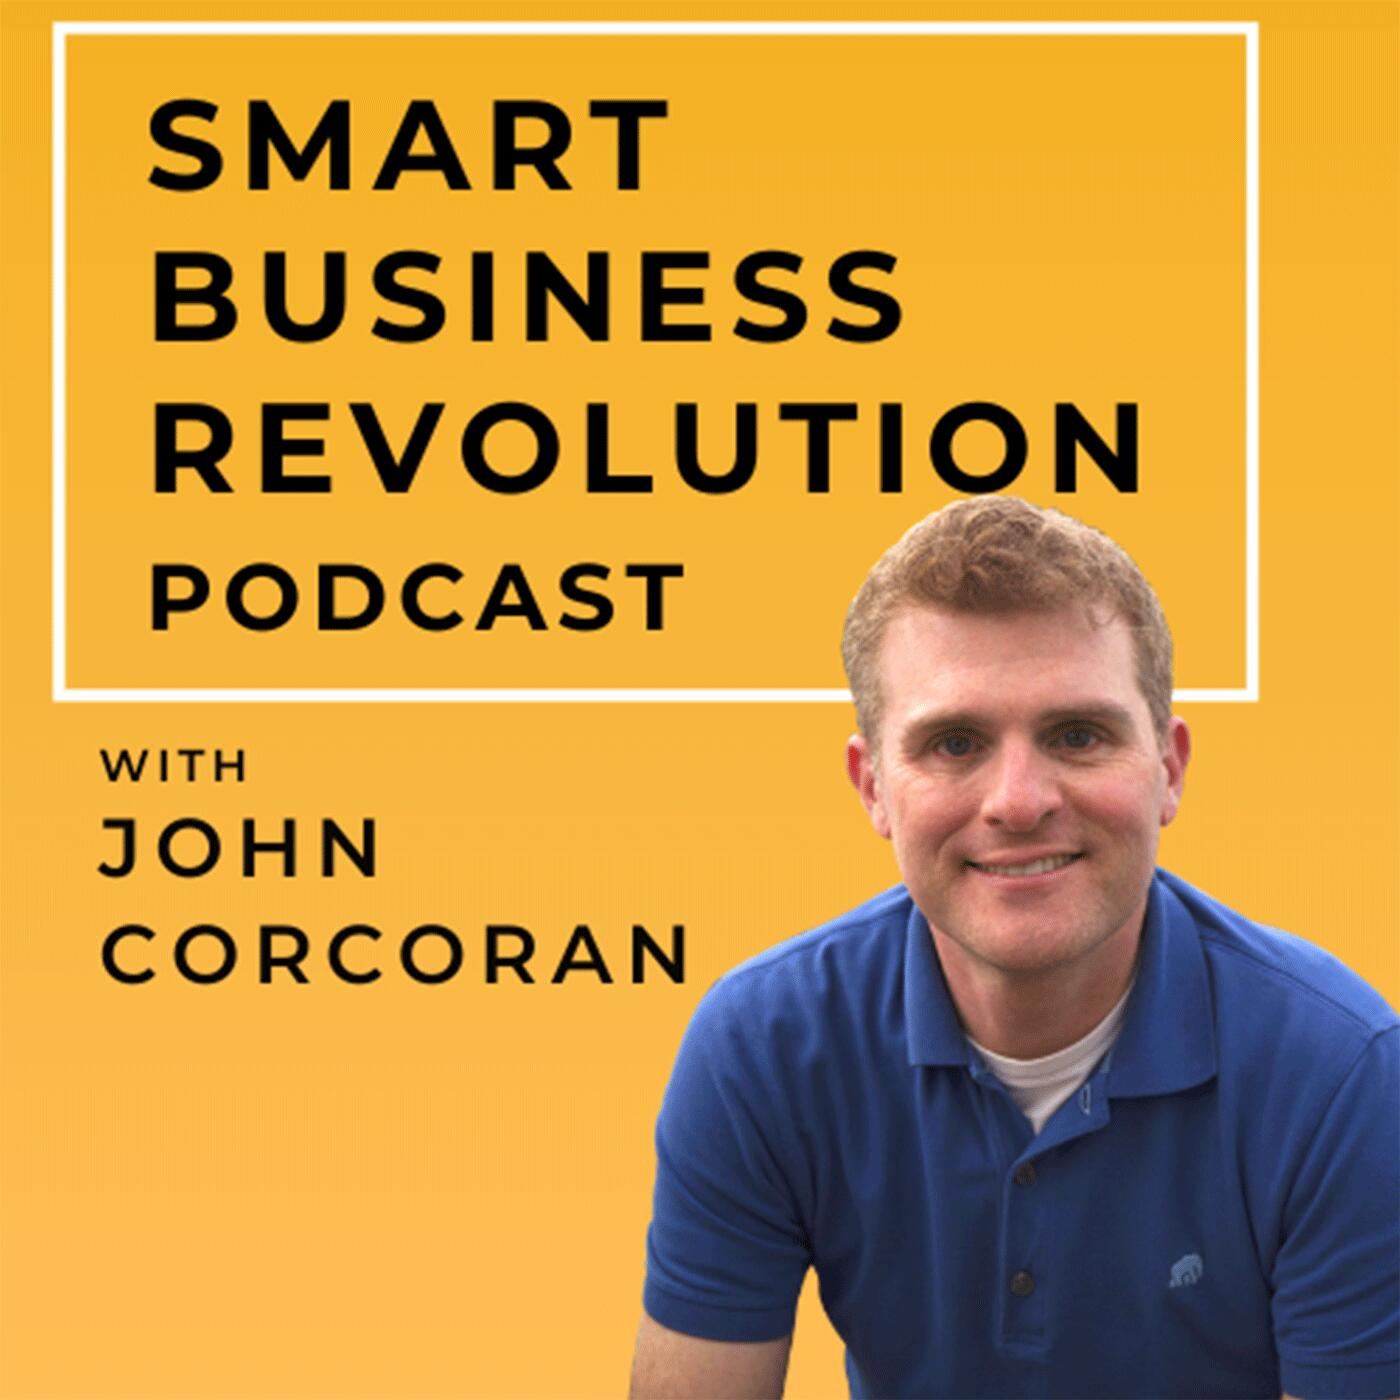 Smart Business Revolution | Turn Relationships into Revenues | Networking | More Clients | Relationship Advice